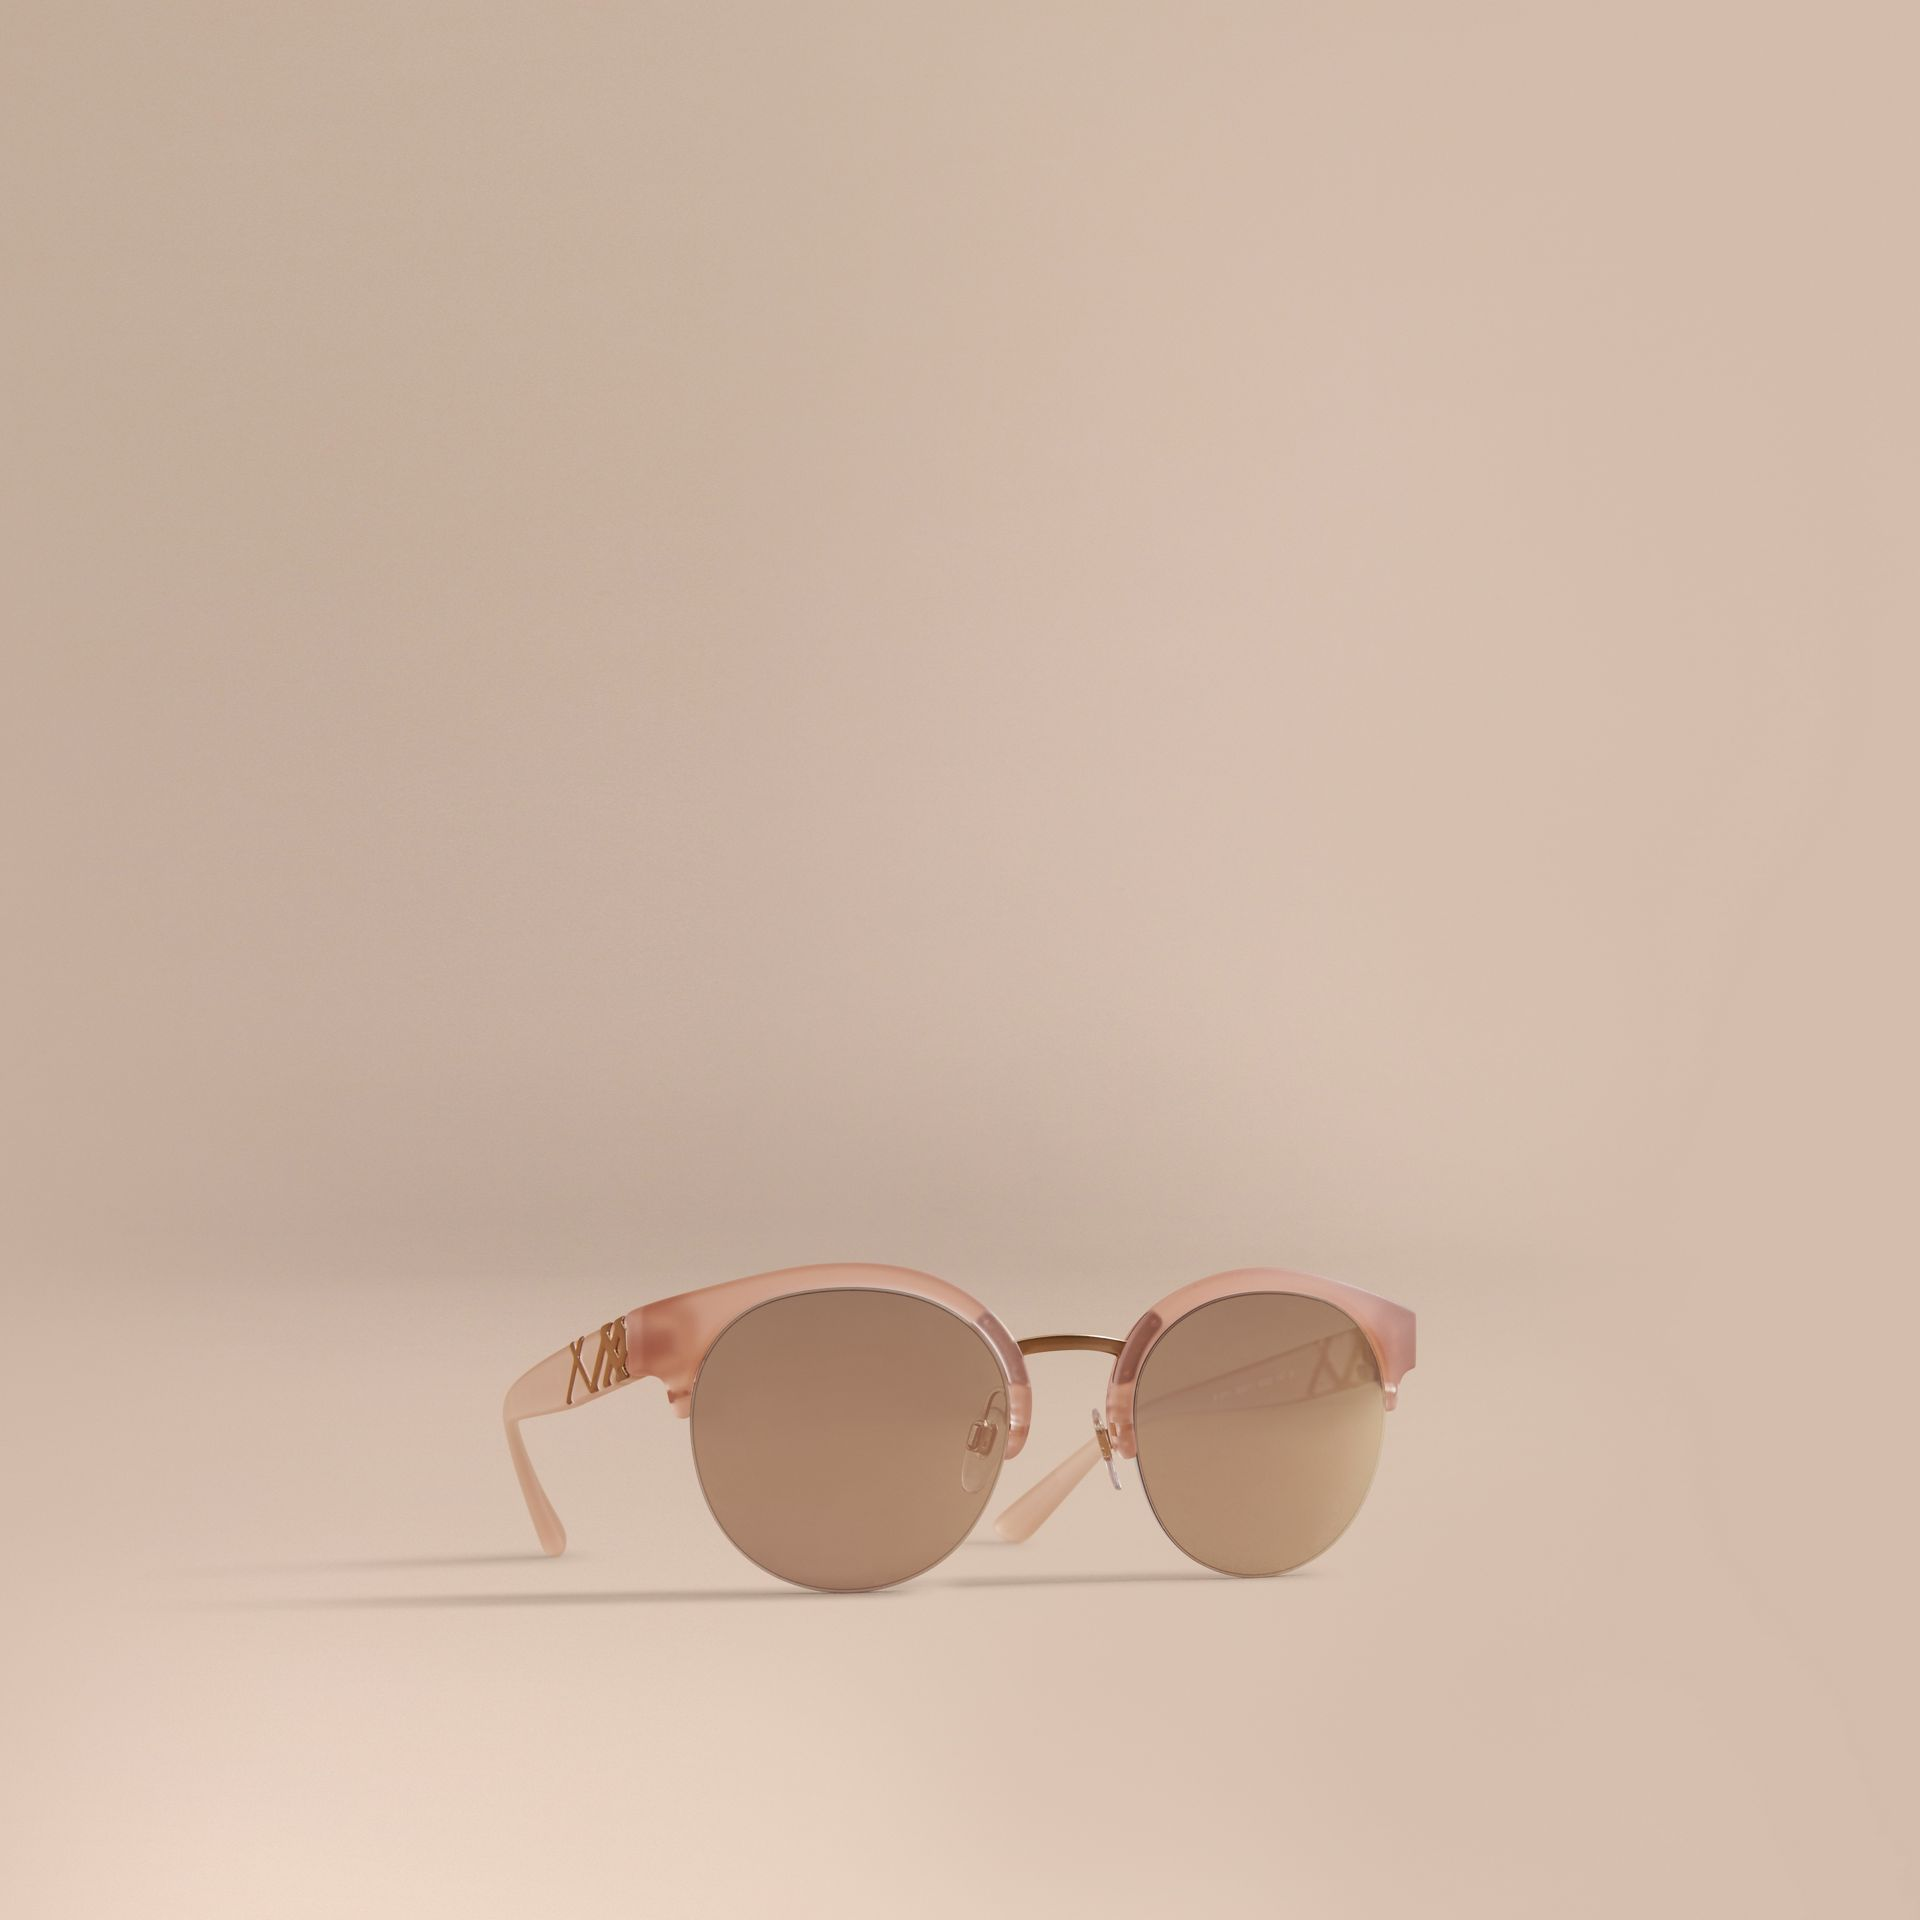 Check Detail Round Half-frame Sunglasses in Nude - Women | Burberry - gallery image 1